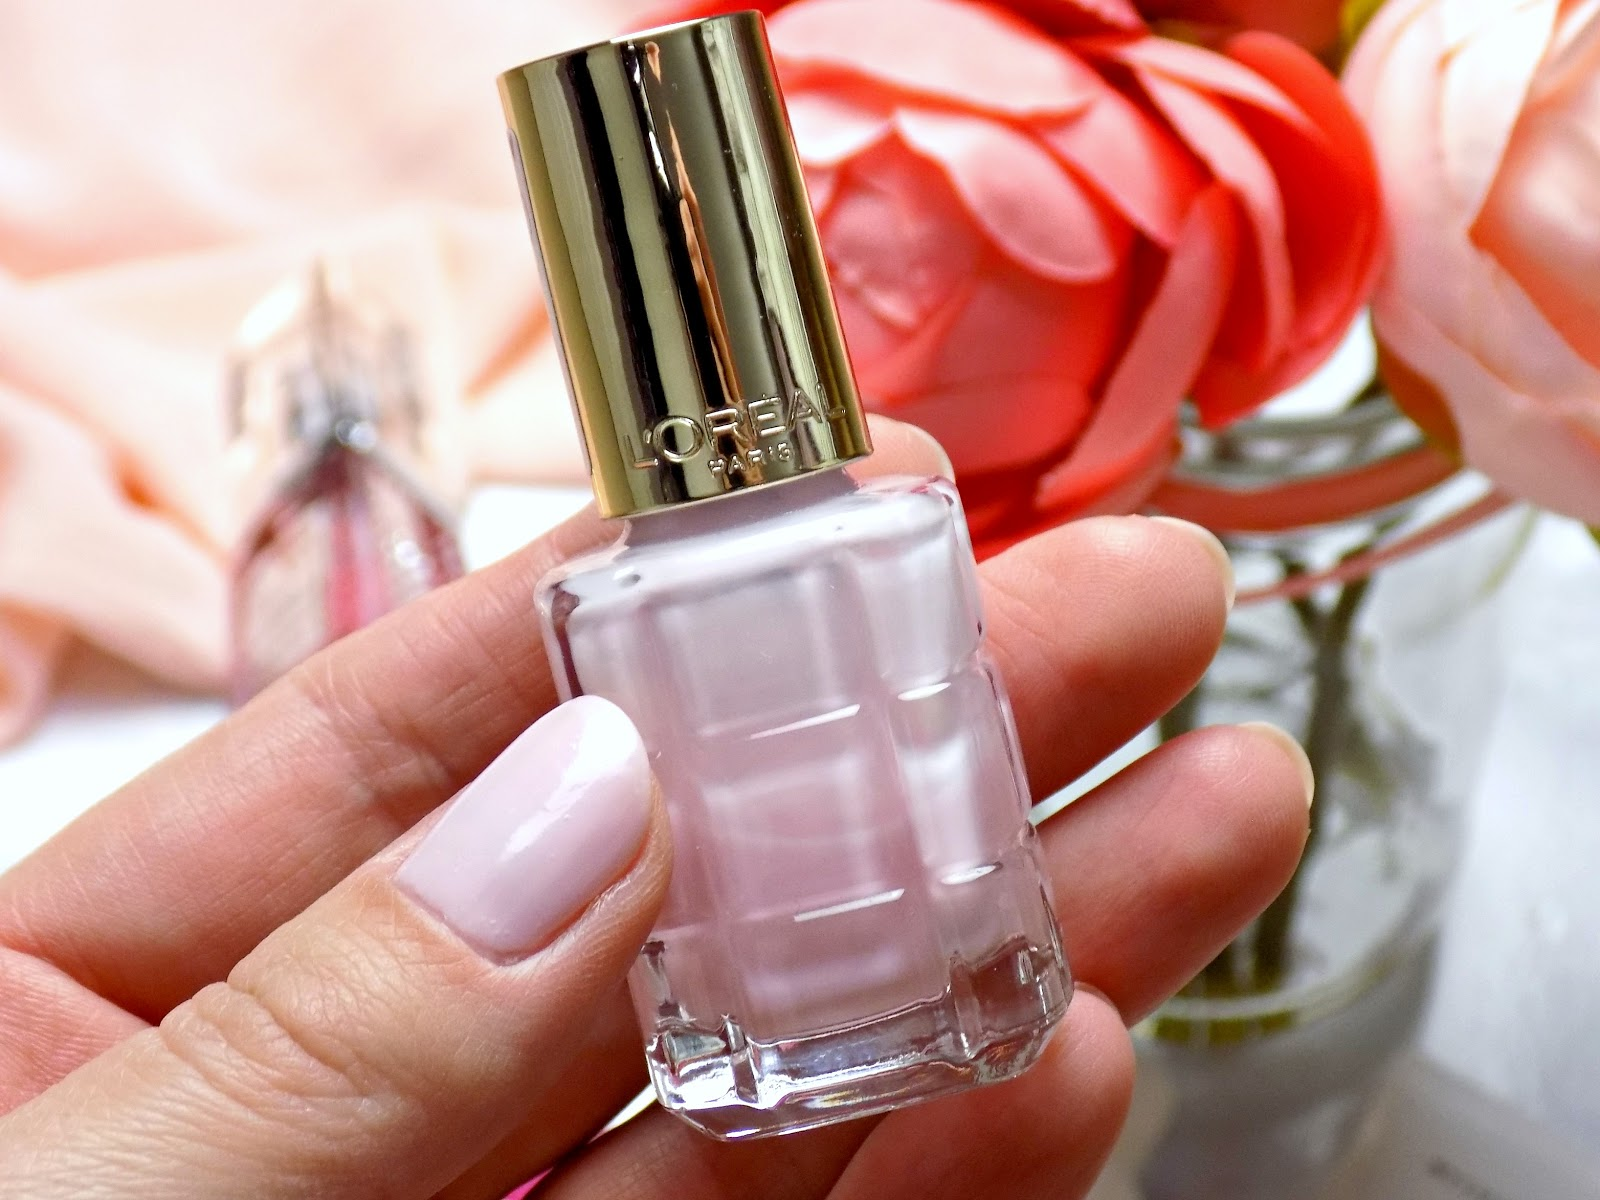 L'oreal nail polish shade 220